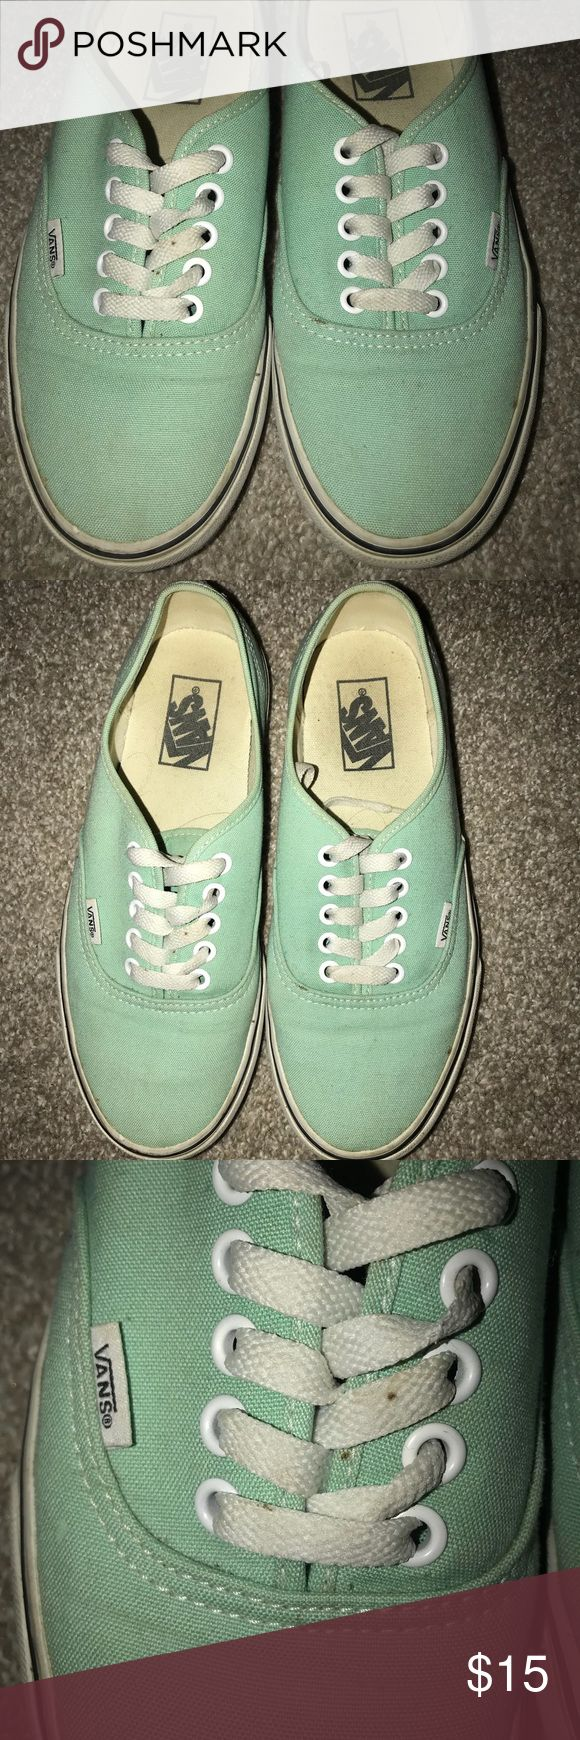 Mint Green Vans Mint green Vans  Size 7 MENS and 8.5 WOMENS worn condition but can be cleaned up Still cute and comfy! Vans Shoes Sneakers